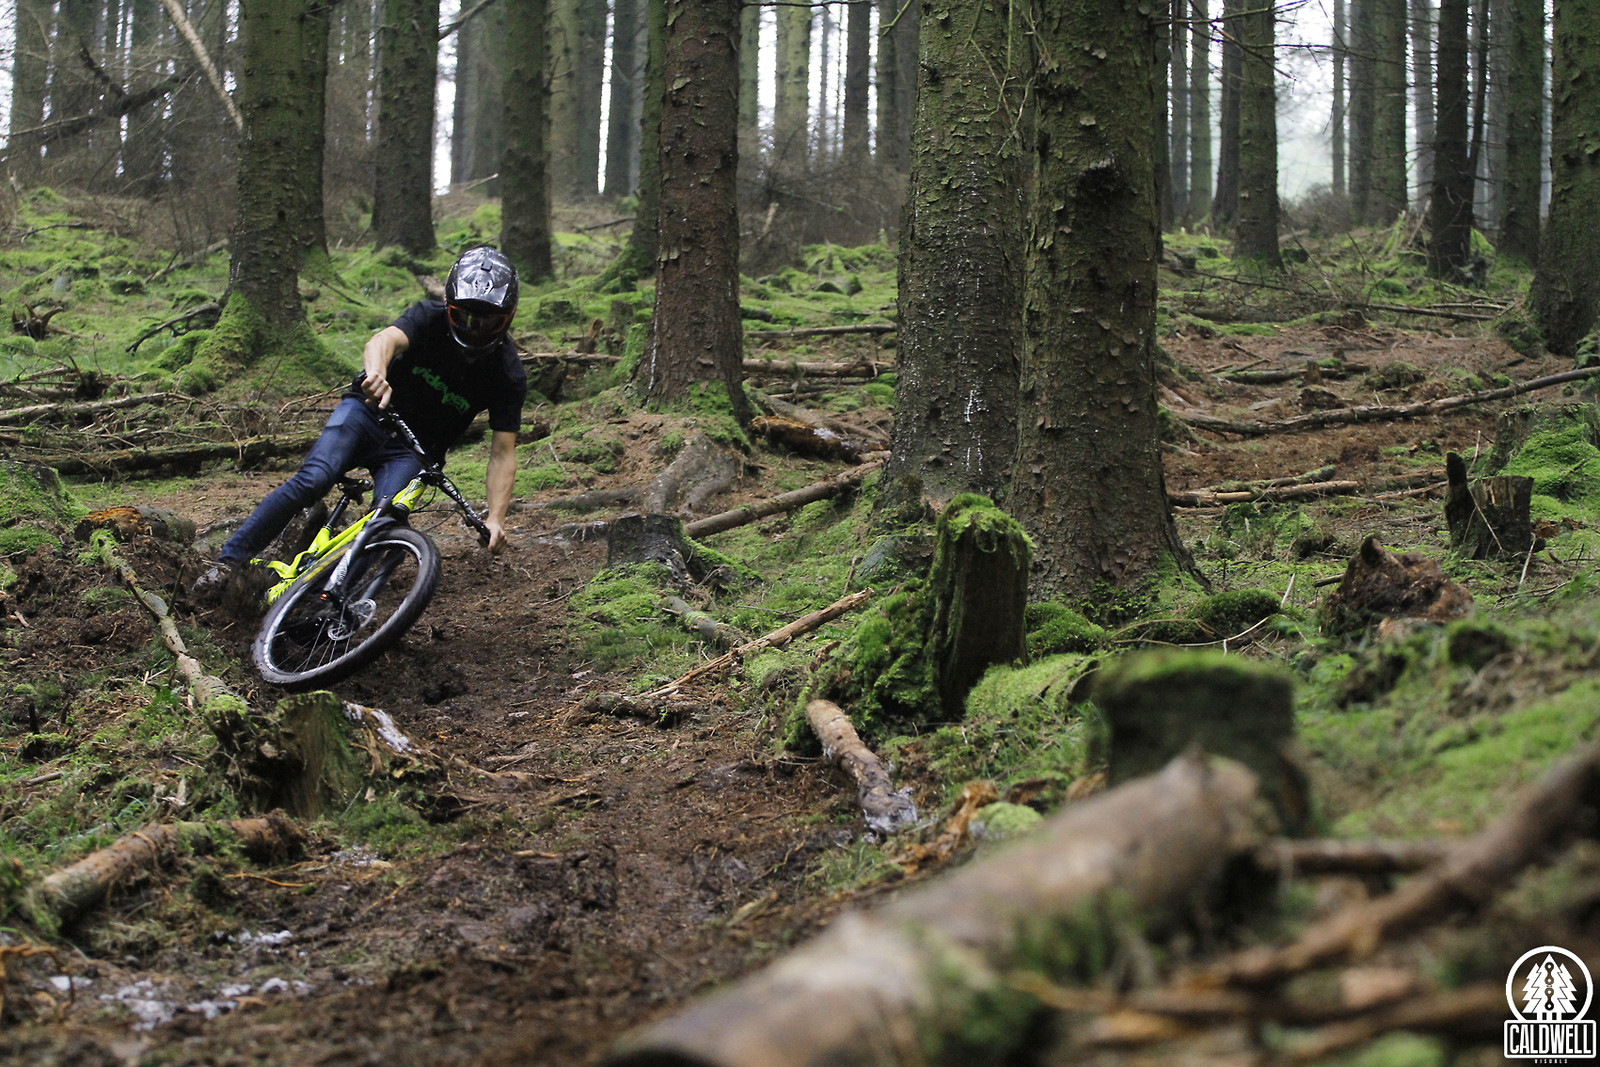 Deep in mossy loam - CaldwellVisuals - Mountain Biking Pictures - Vital MTB